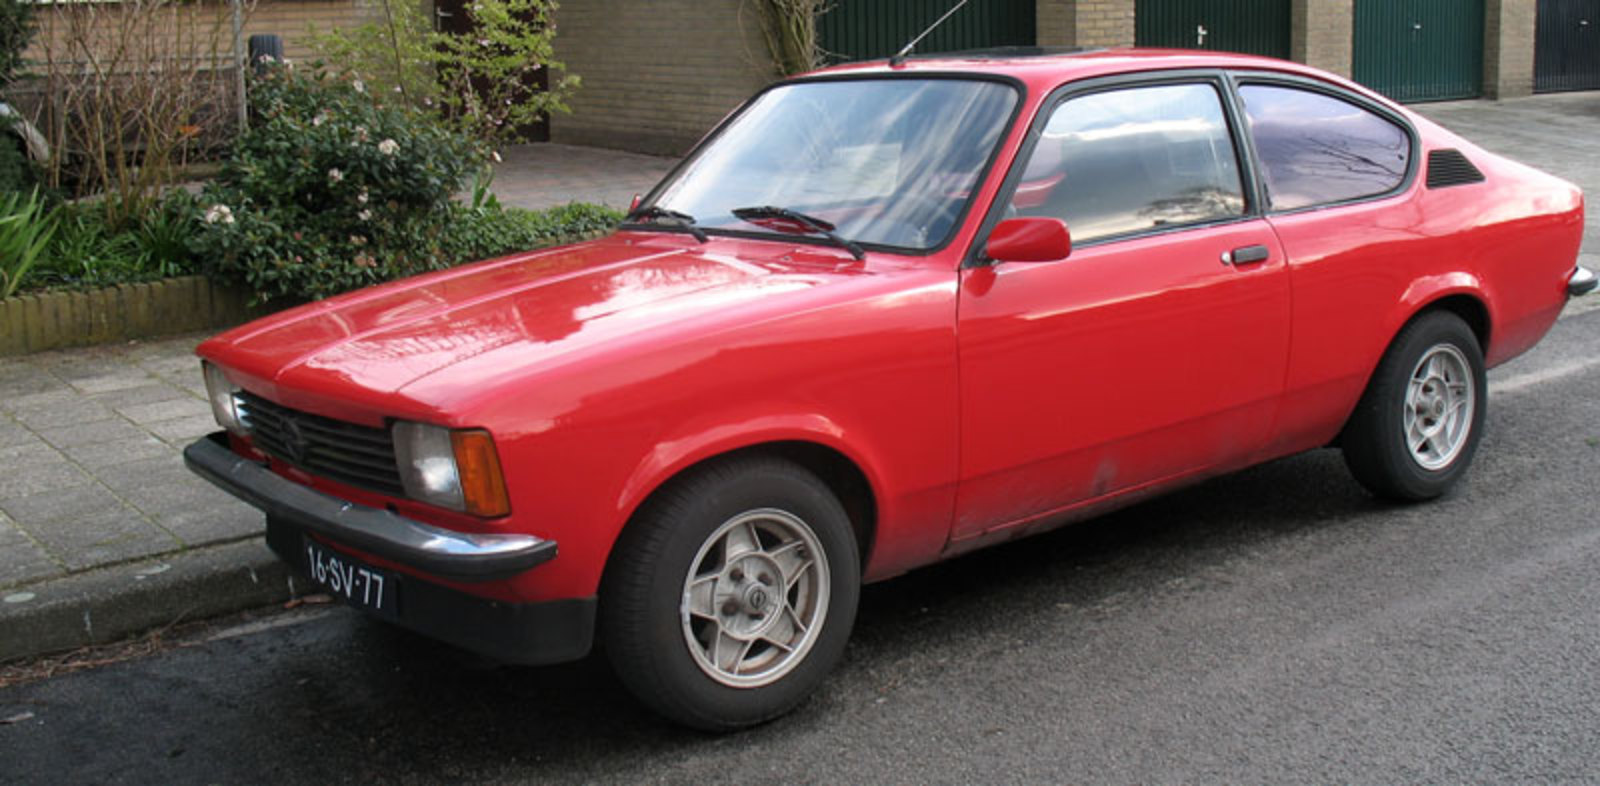 Opel Kadett LS coupe. View Download Wallpaper. 800x393. Comments